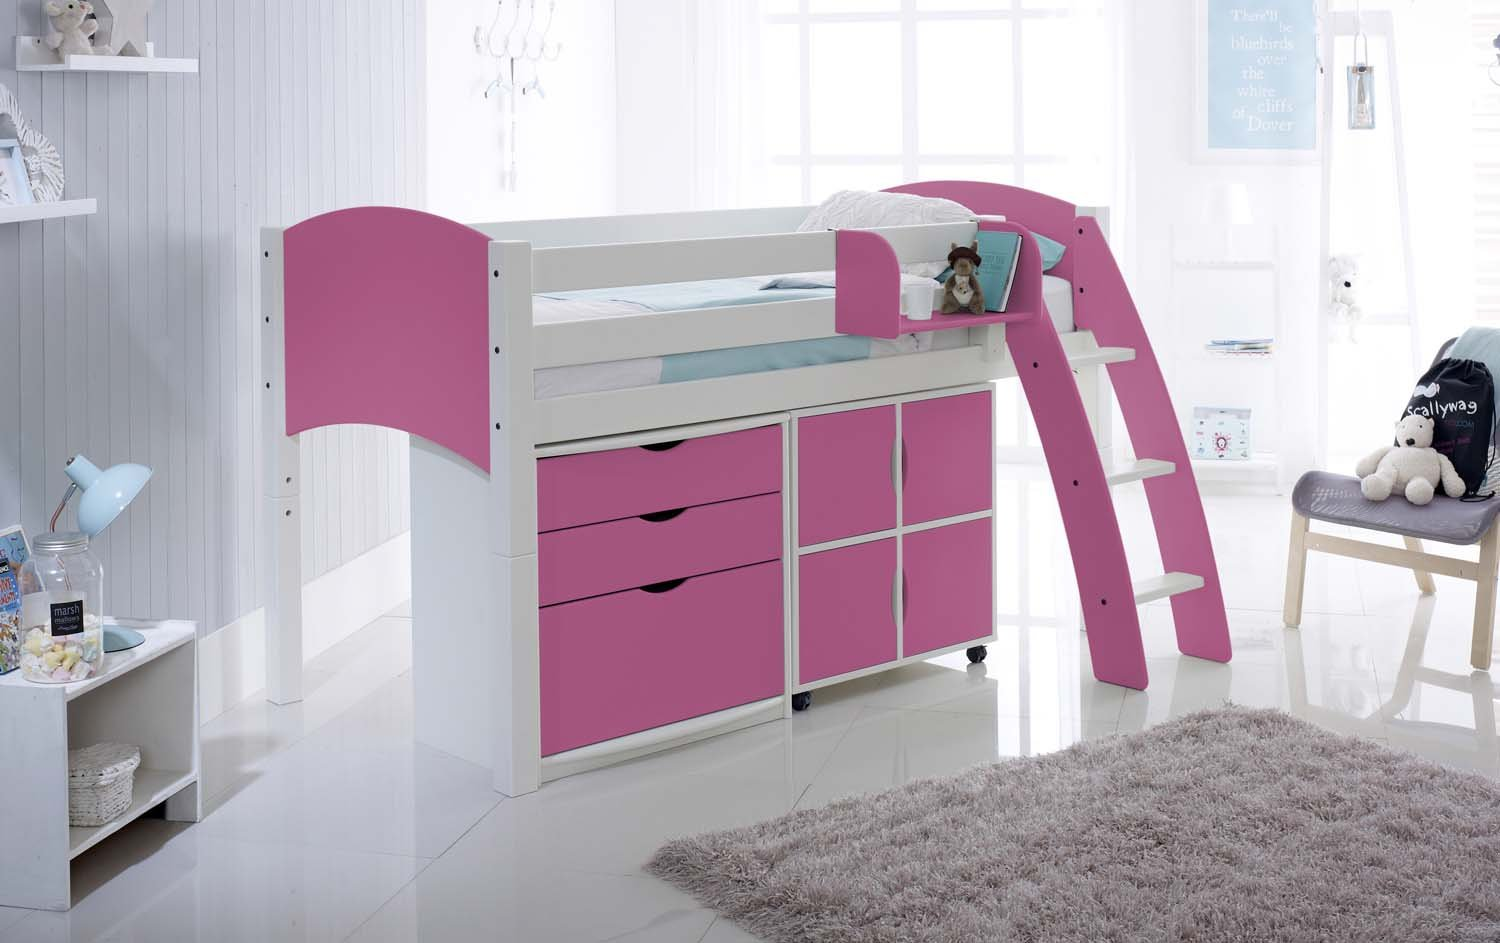 Childrens Kids 3 Tier Toy Bedroom Storage Shelf Unit 8: Cabin Bed With Drawers And Quad Storage Unit